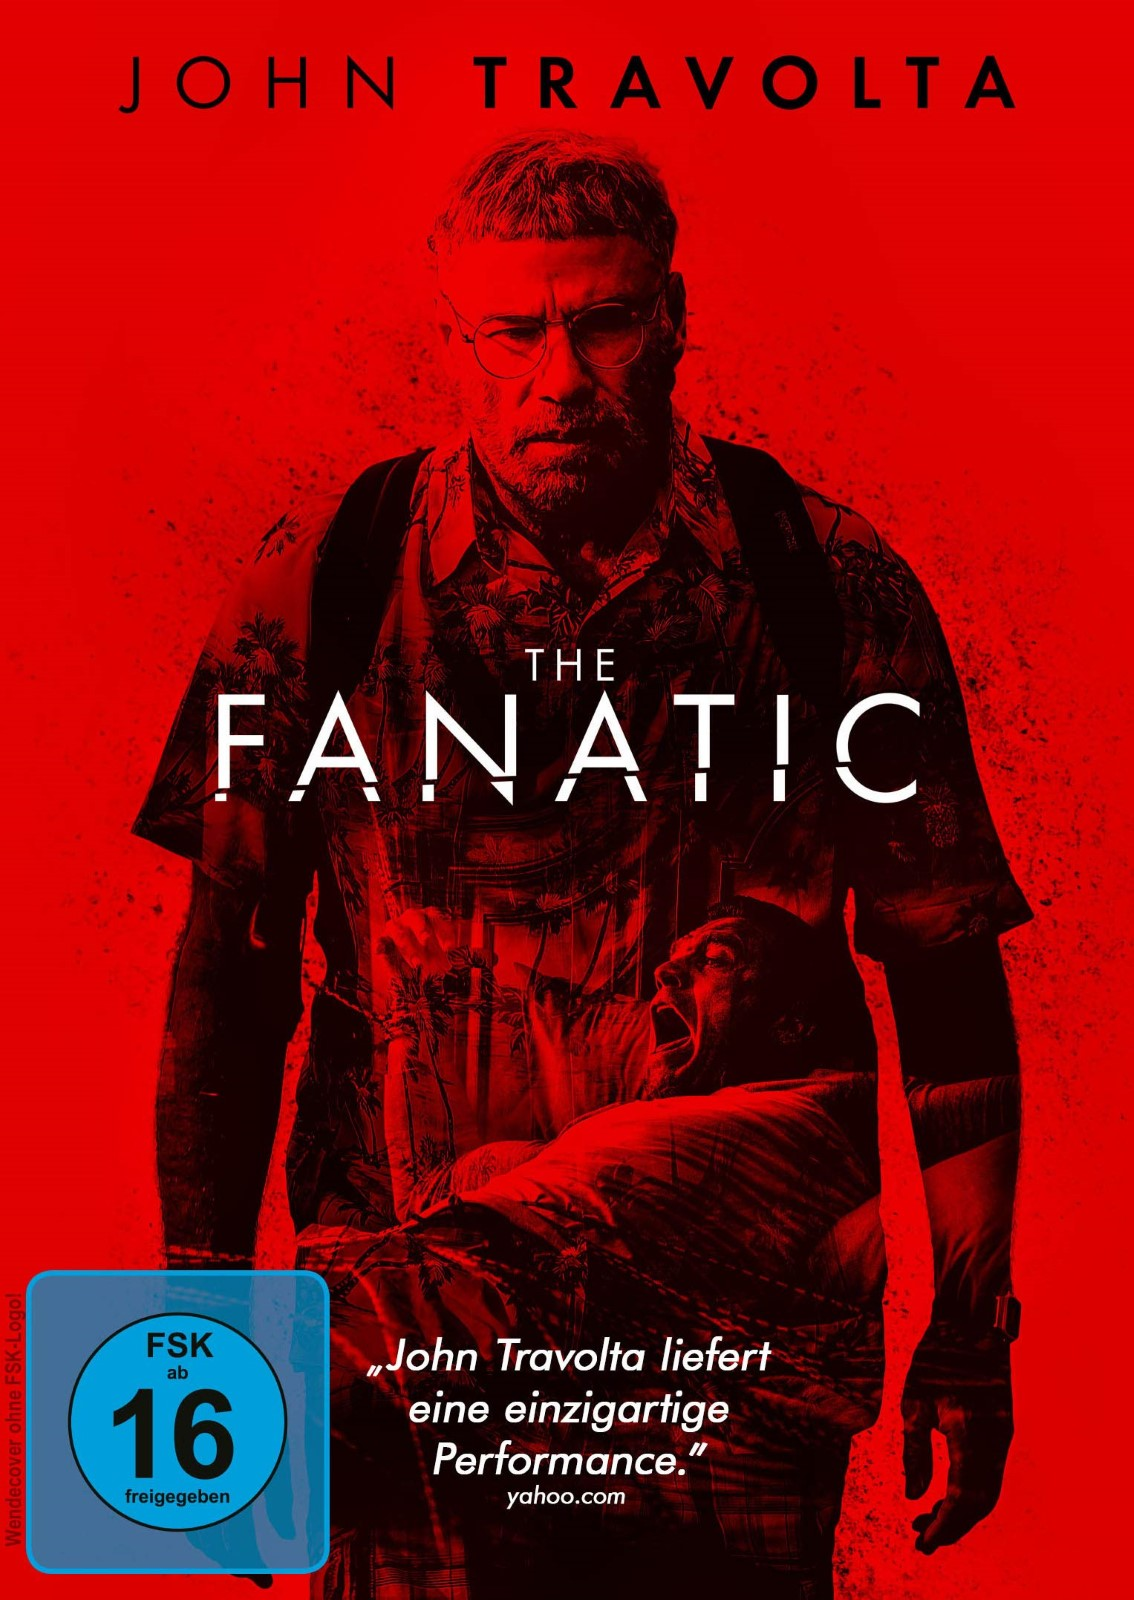 The Fanatic - Film 2019 - FILMSTARTS.de